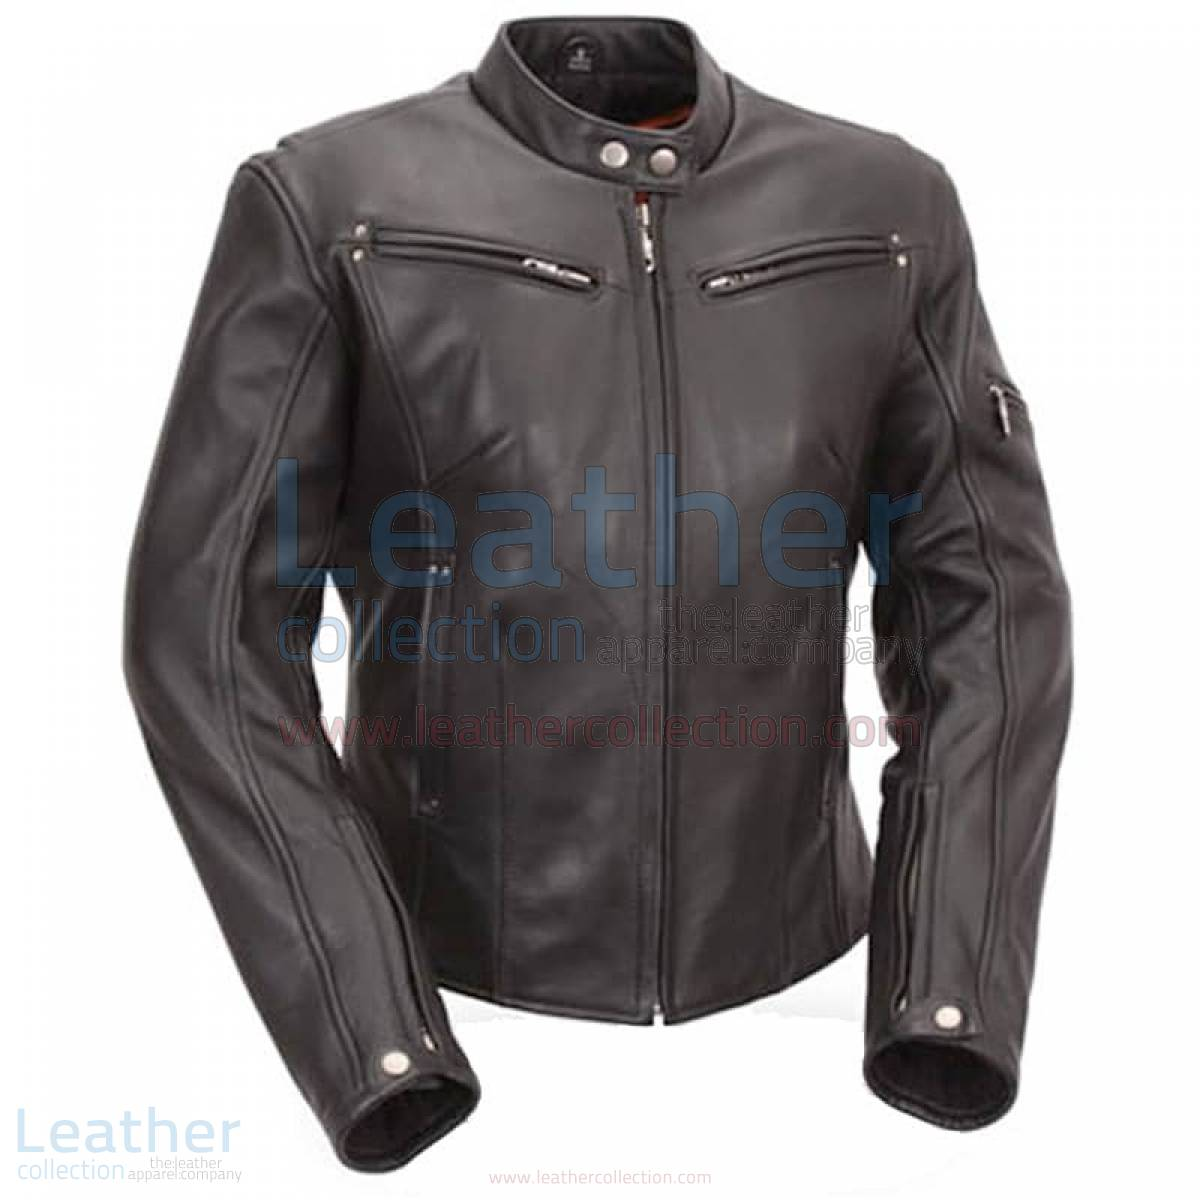 Leather Touring Jacket with Scooter Collar & Multiple Vents